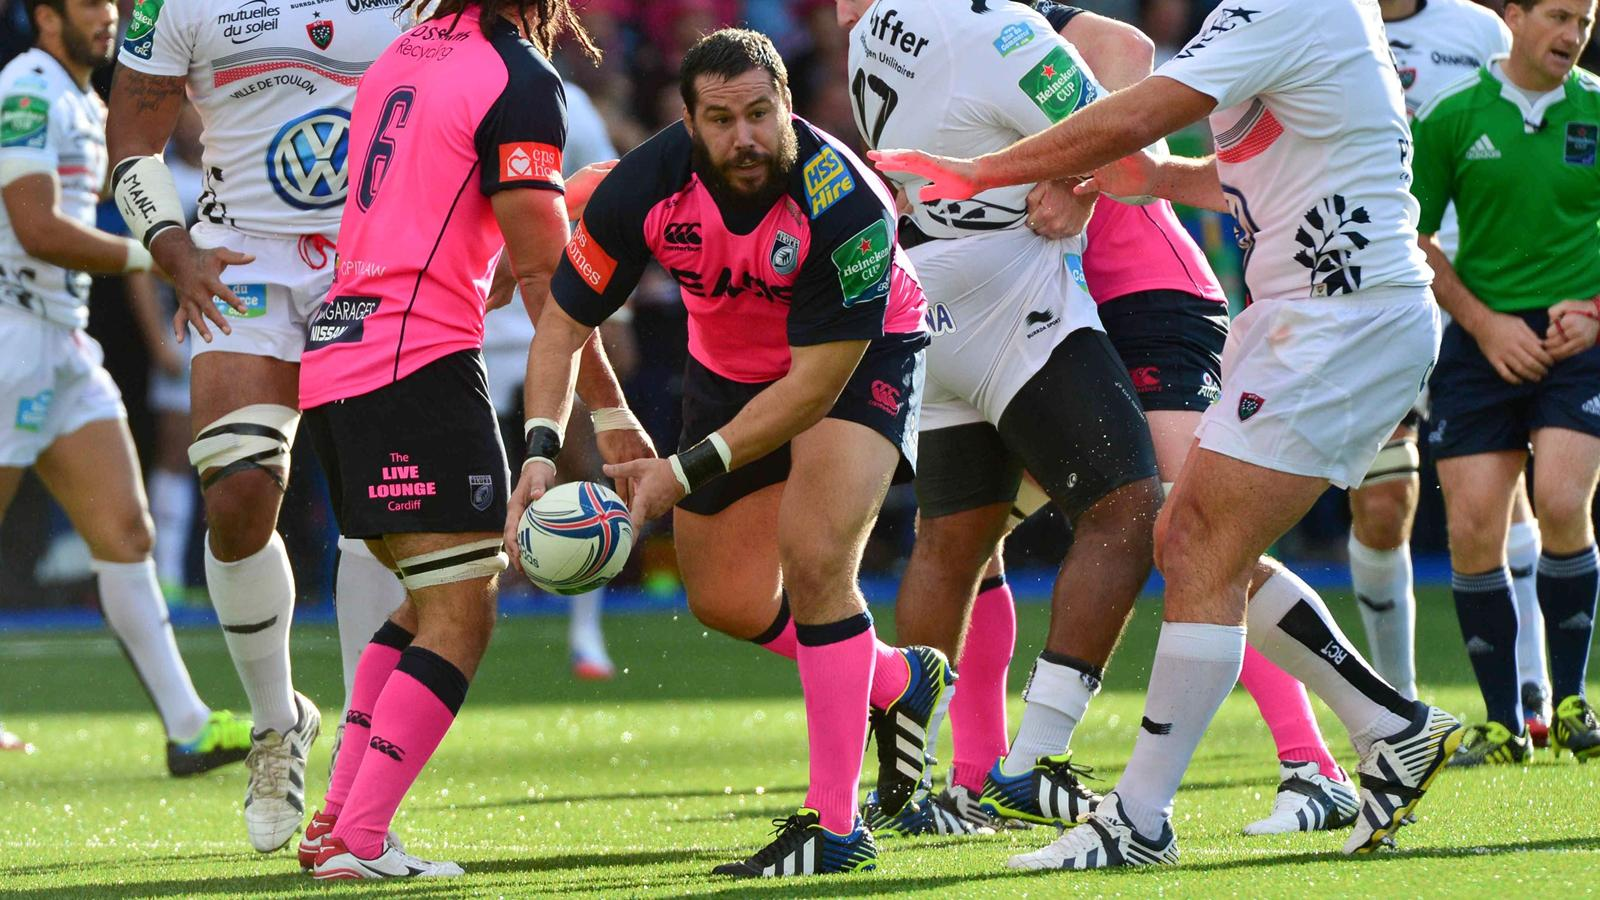 Rugby Stade Francais vs La Rochelle en direct live streaming